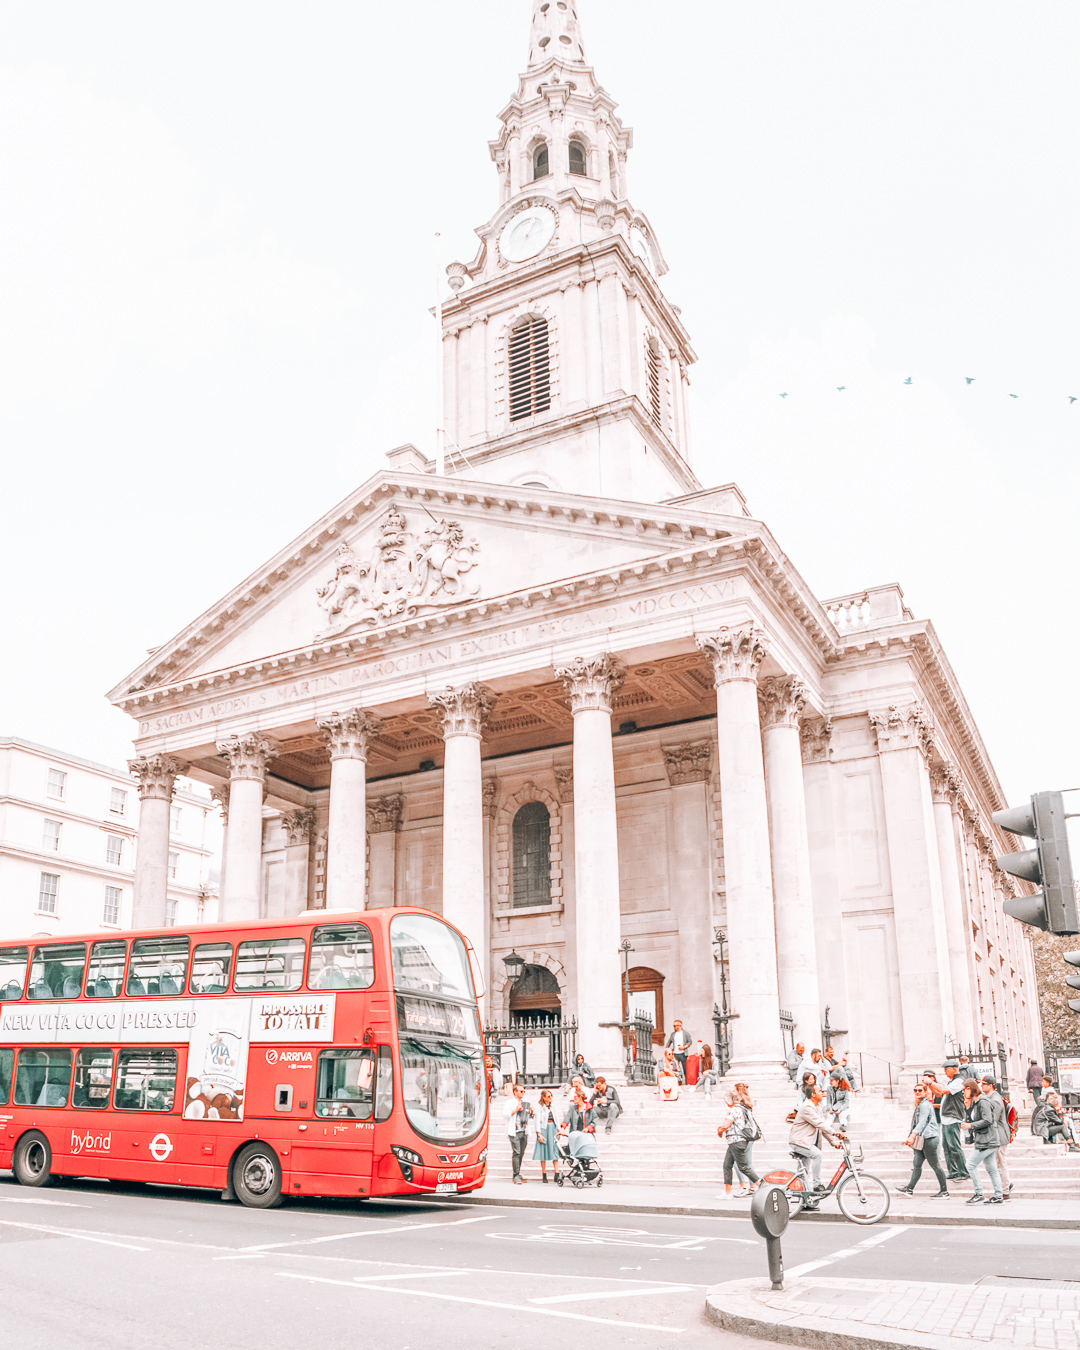 St. Martin in the Fields London